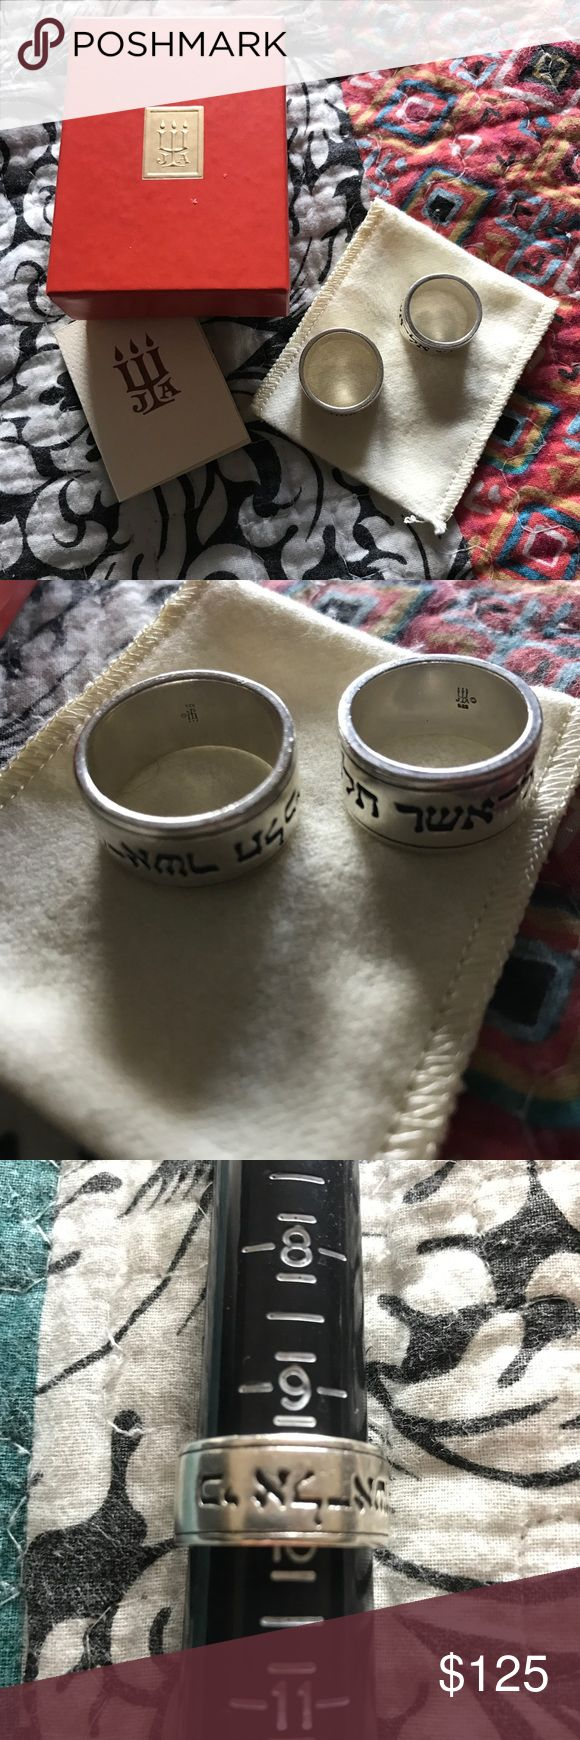 James Avery ring set Ruth 1:16 - where you go I will go. His & Hers ring set from James Avery - used but in excellent condition. Includes box, bag & care card. THIS CANNOT BE COMBINED WITH ANY BUNDLE OFFERS!!!! 💍PIRICE IS FIRM💑 James Avery Accessories Jewelry